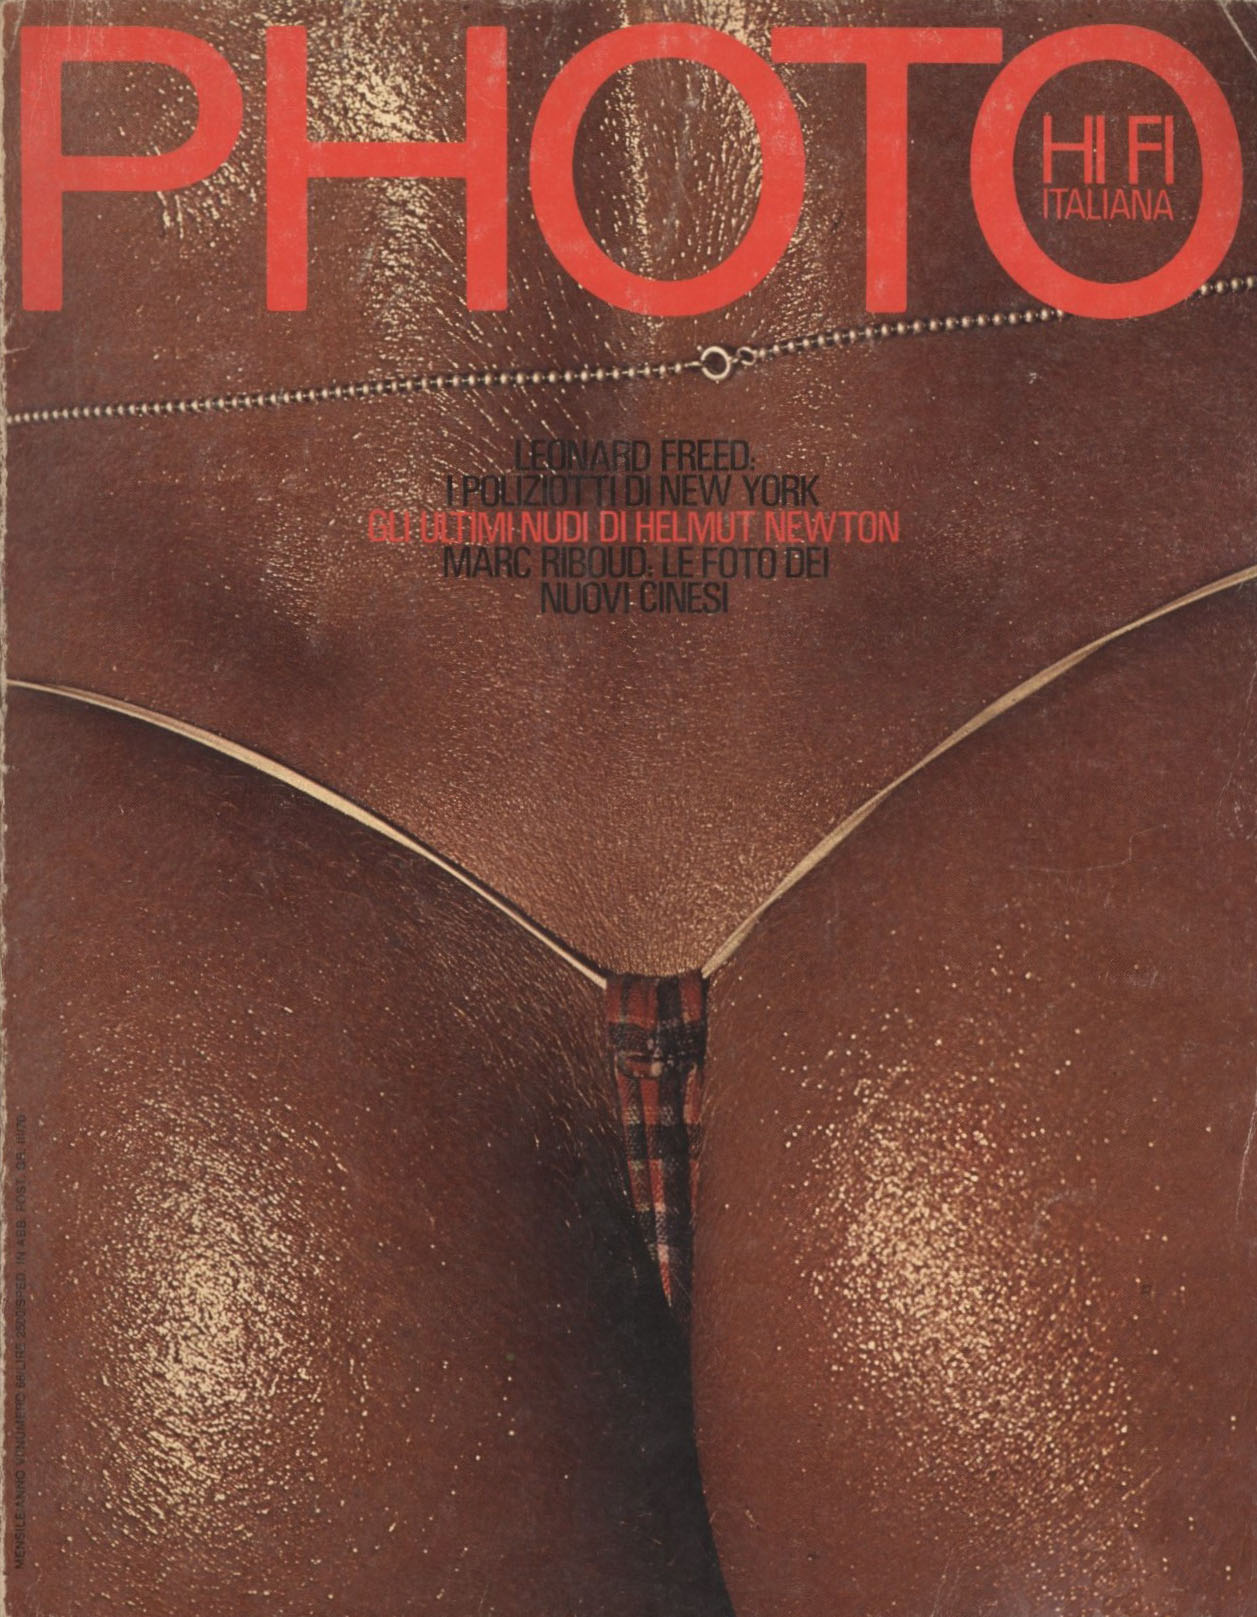 LUCILLA | SAINT TROPEZ | 1978 | PHOTOGRAPHY PHILIPPE GARNER | PHOTO ITALY N° 66 | DECEMBER 1980